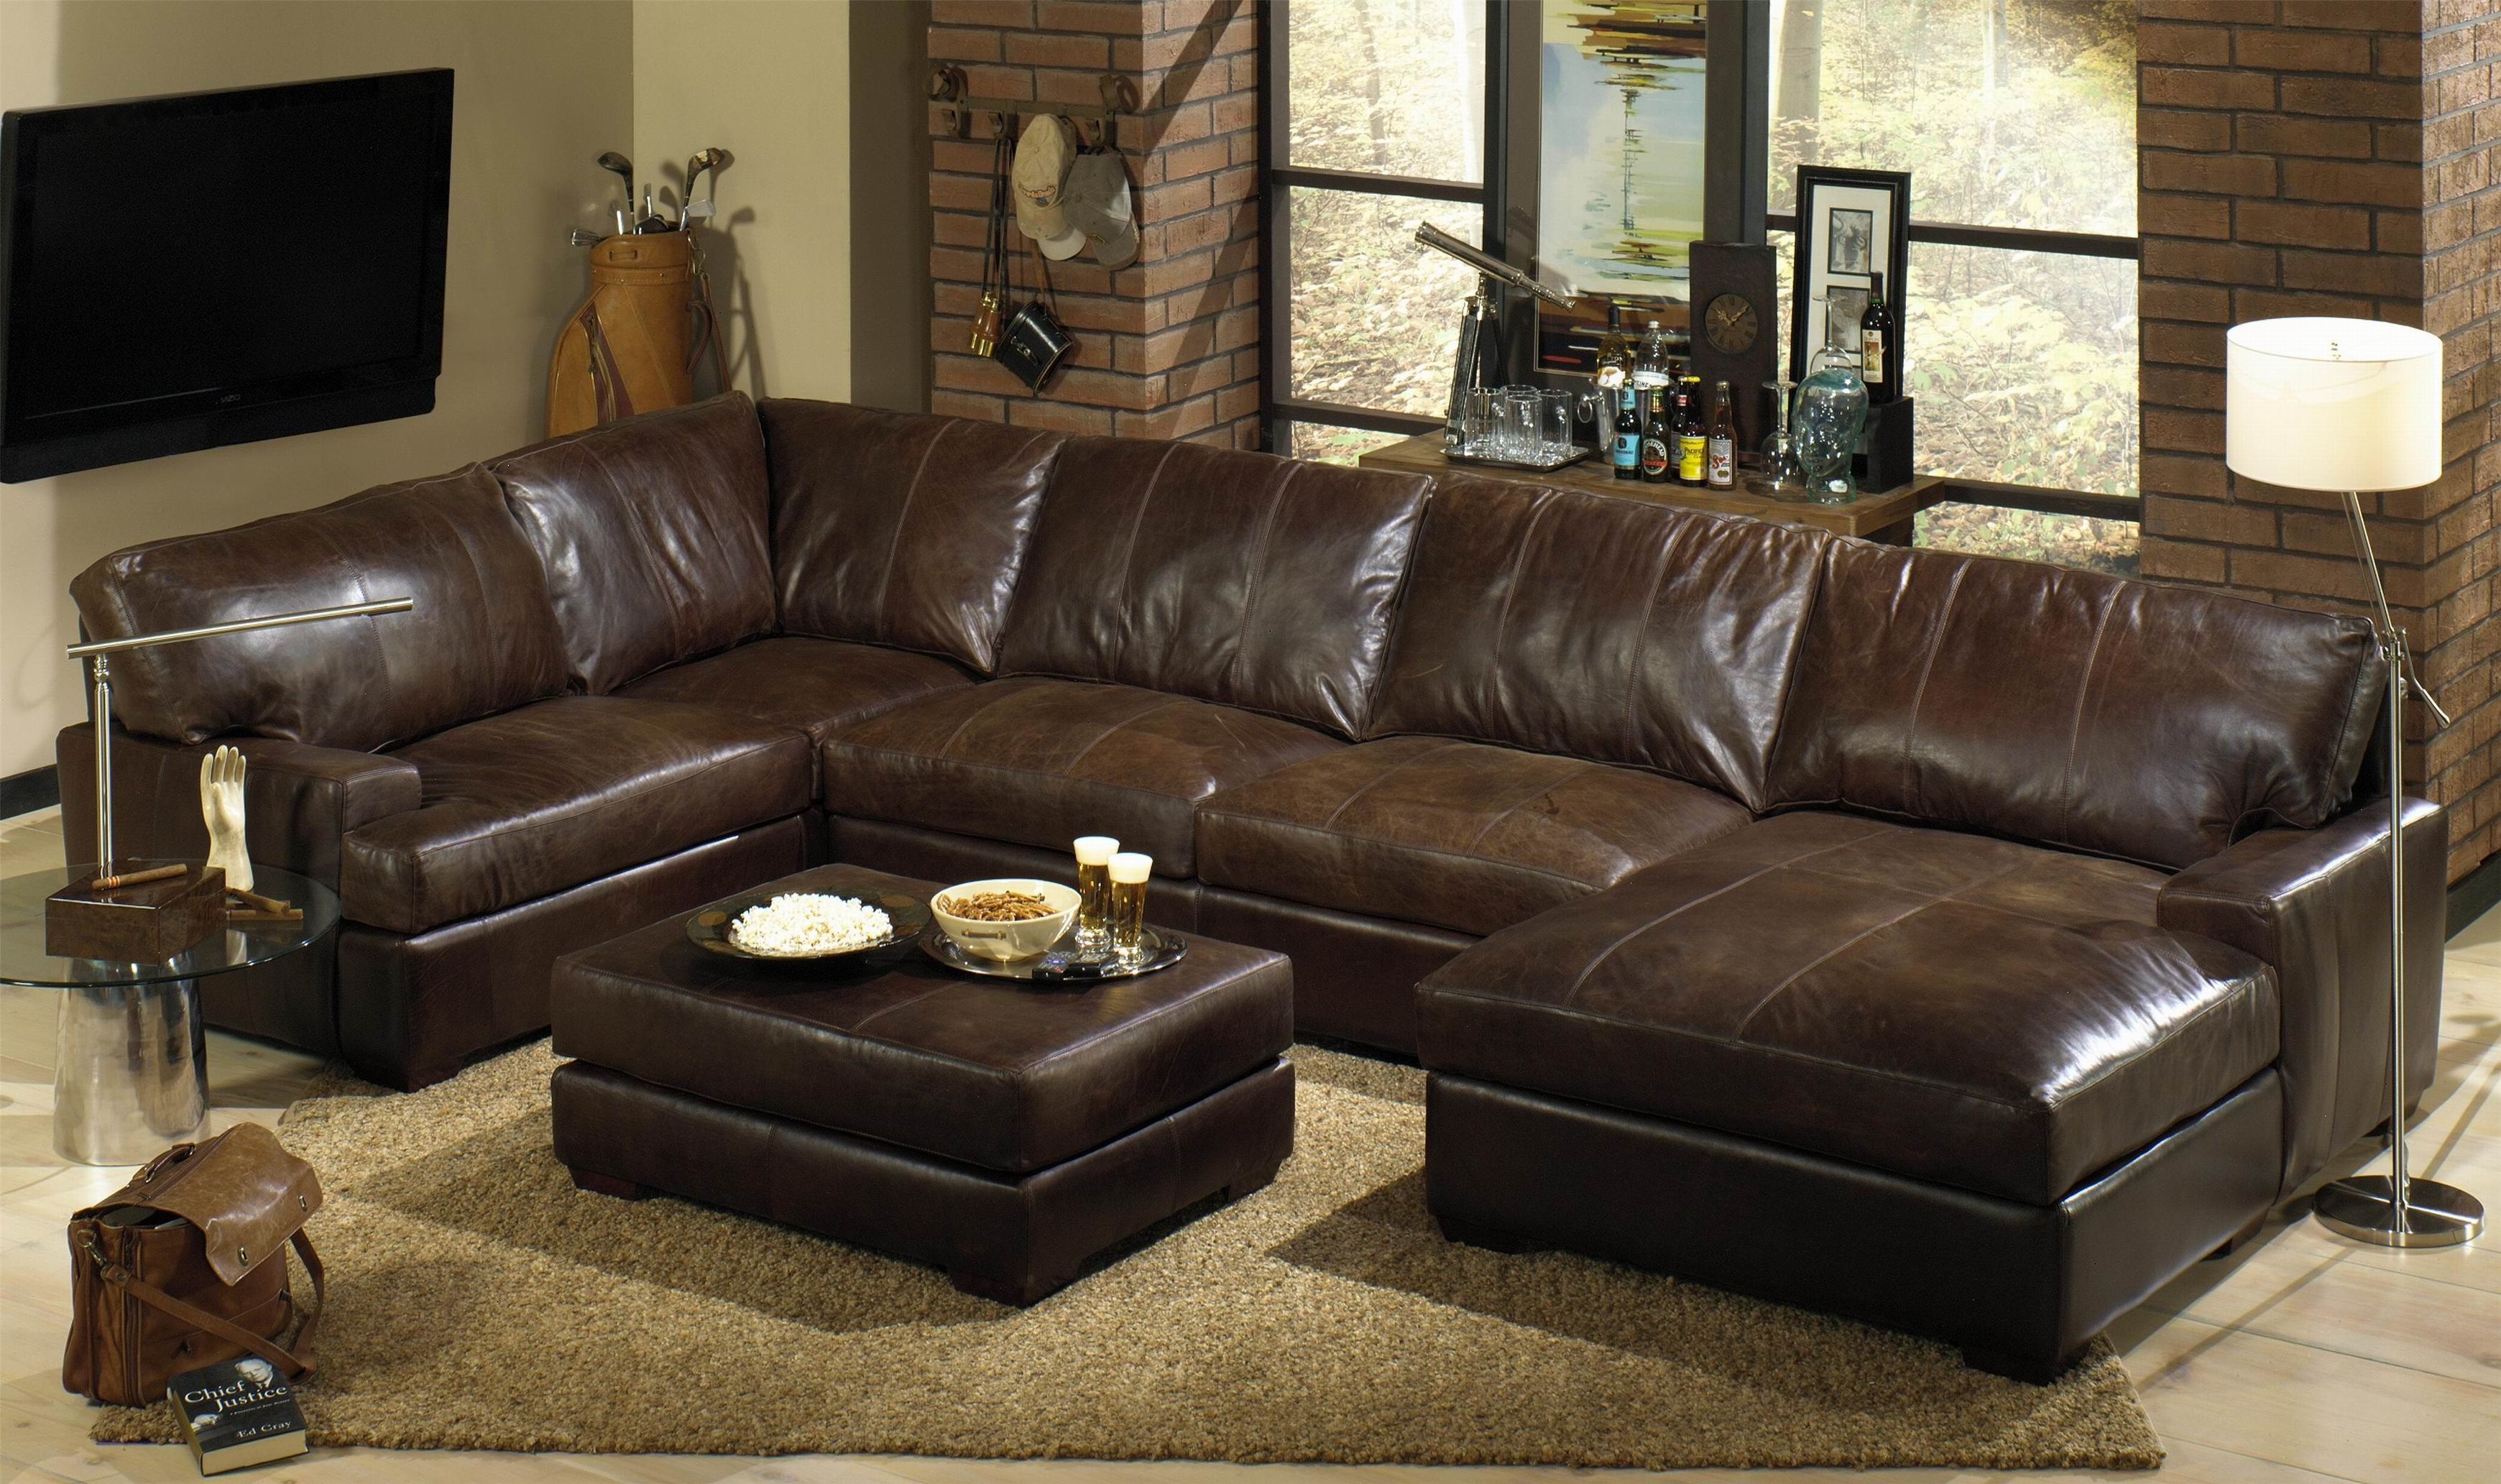 Rectangular Coffee Table With Glass Top Decor Rest Stoney Creek With Regard To Vaughan Sectional Sofas (View 4 of 10)